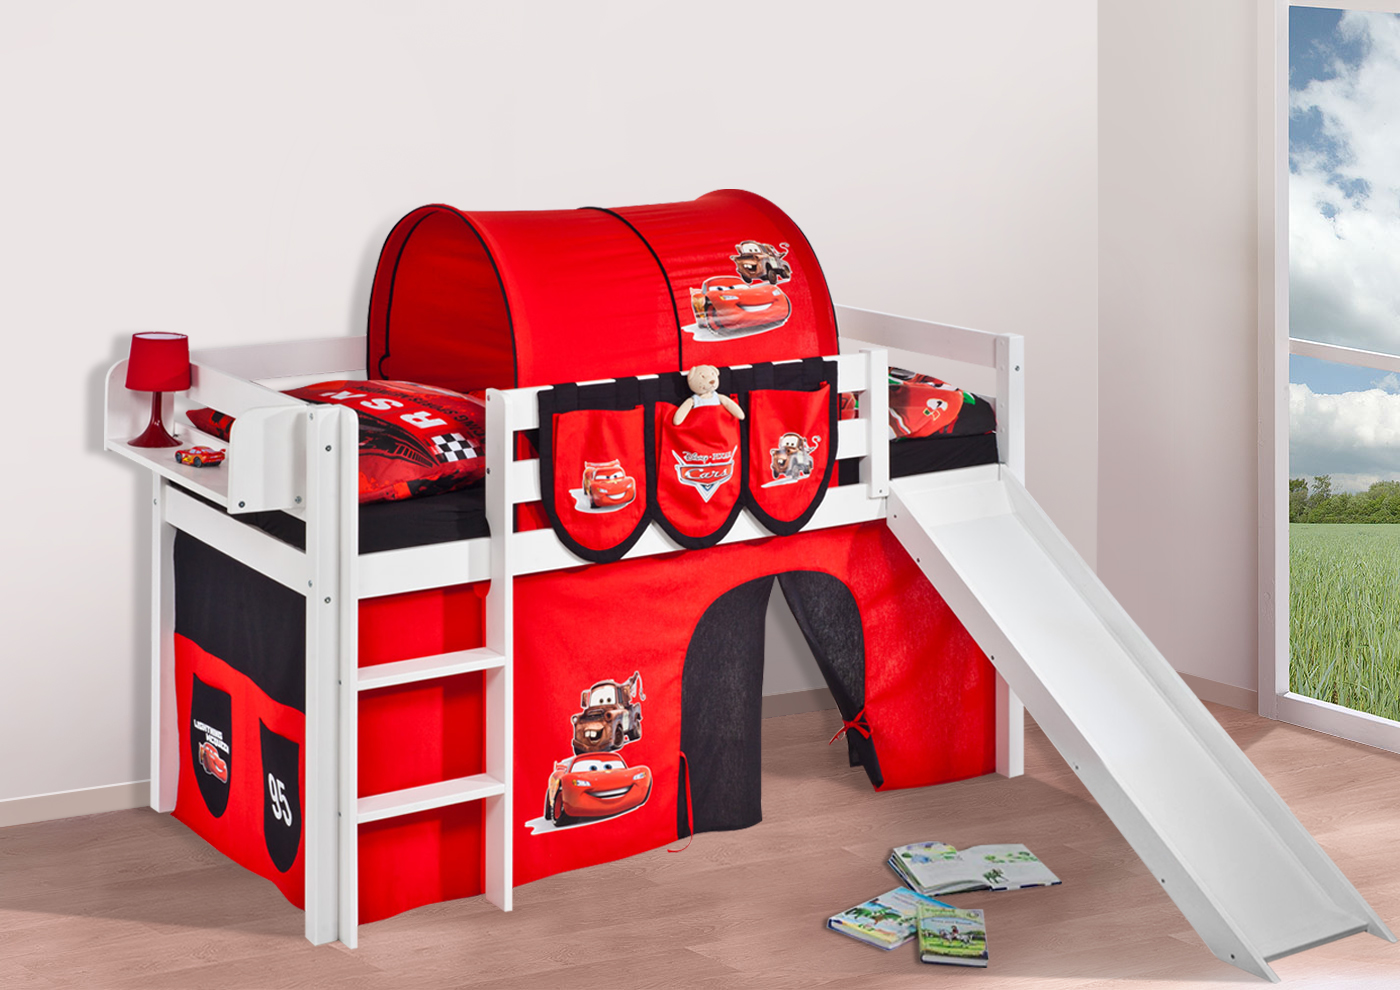 spielbett hochbett kinderbett jelle mit rutsche buche. Black Bedroom Furniture Sets. Home Design Ideas